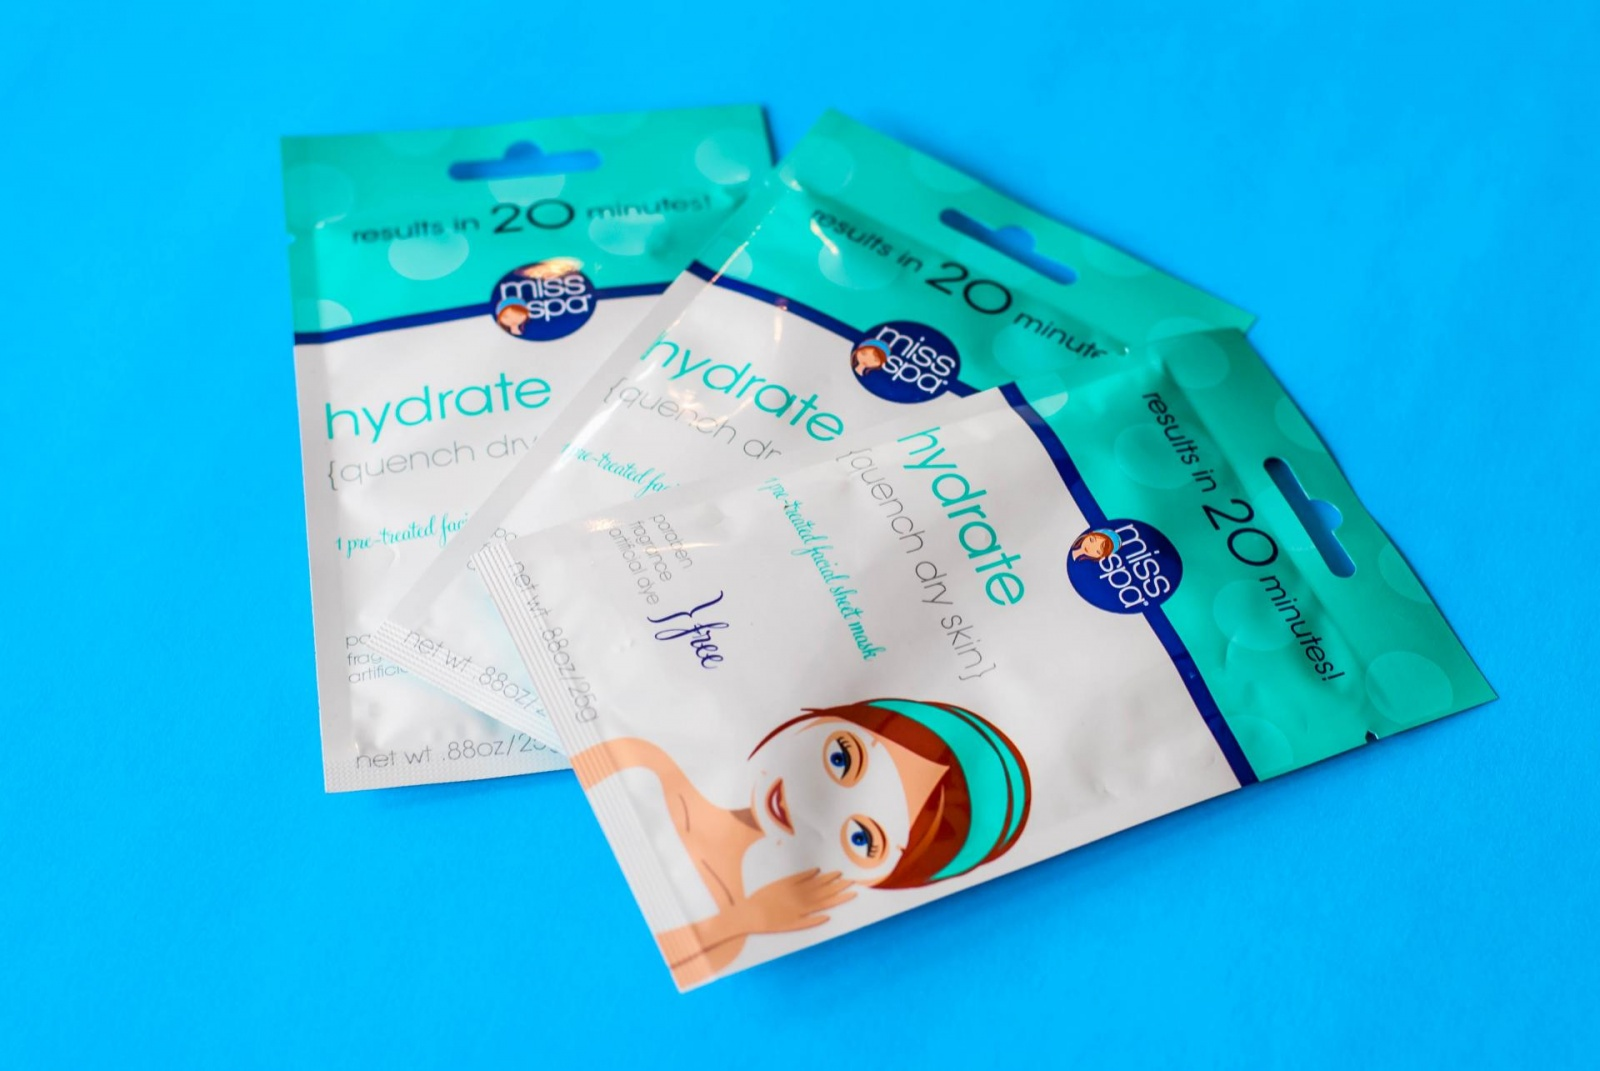 Why I'm in Love with Miss Spa Hydrate Facial Sheet Masks